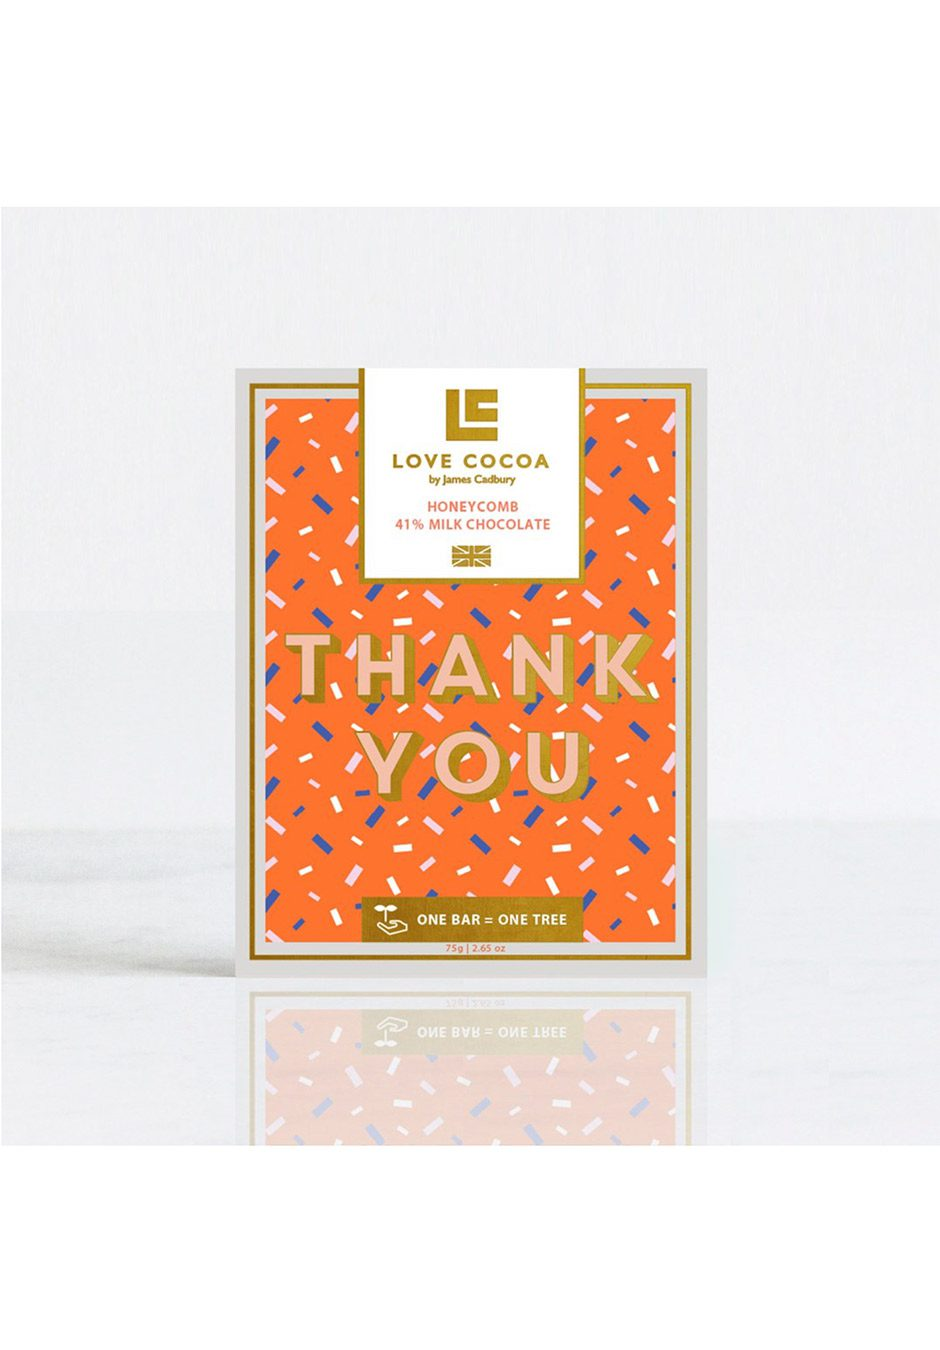 Love Cocoa 'Thank You' | Honeycomb Milk Chocolate Bar | KeiCo Drinks